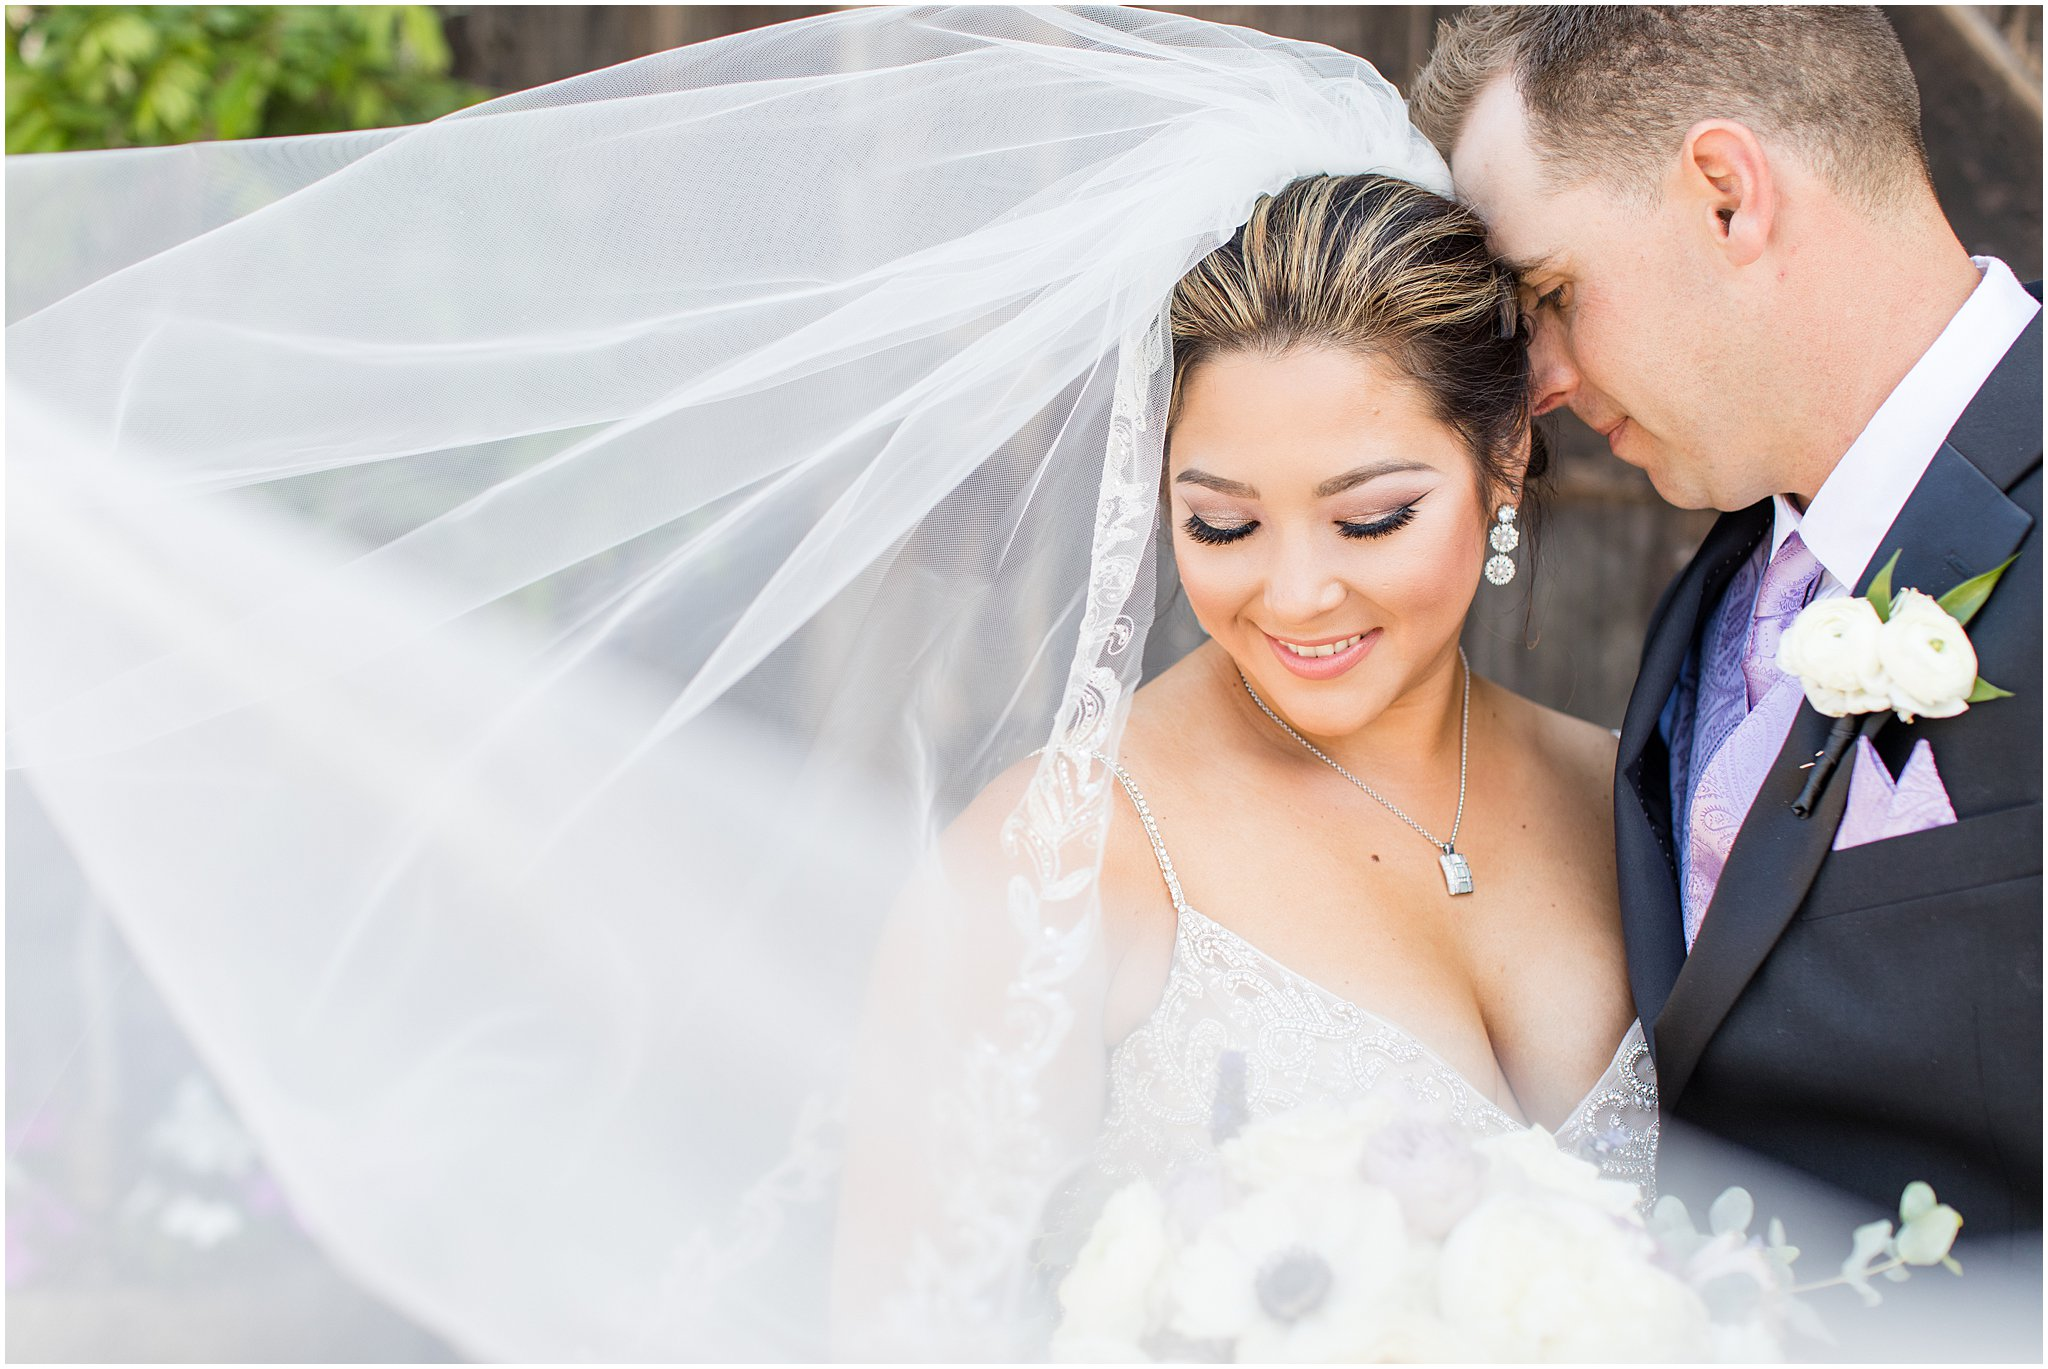 2019 wedding san juan bautista hacienda de leal vineyards bay area wedding photographer_0022.jpg